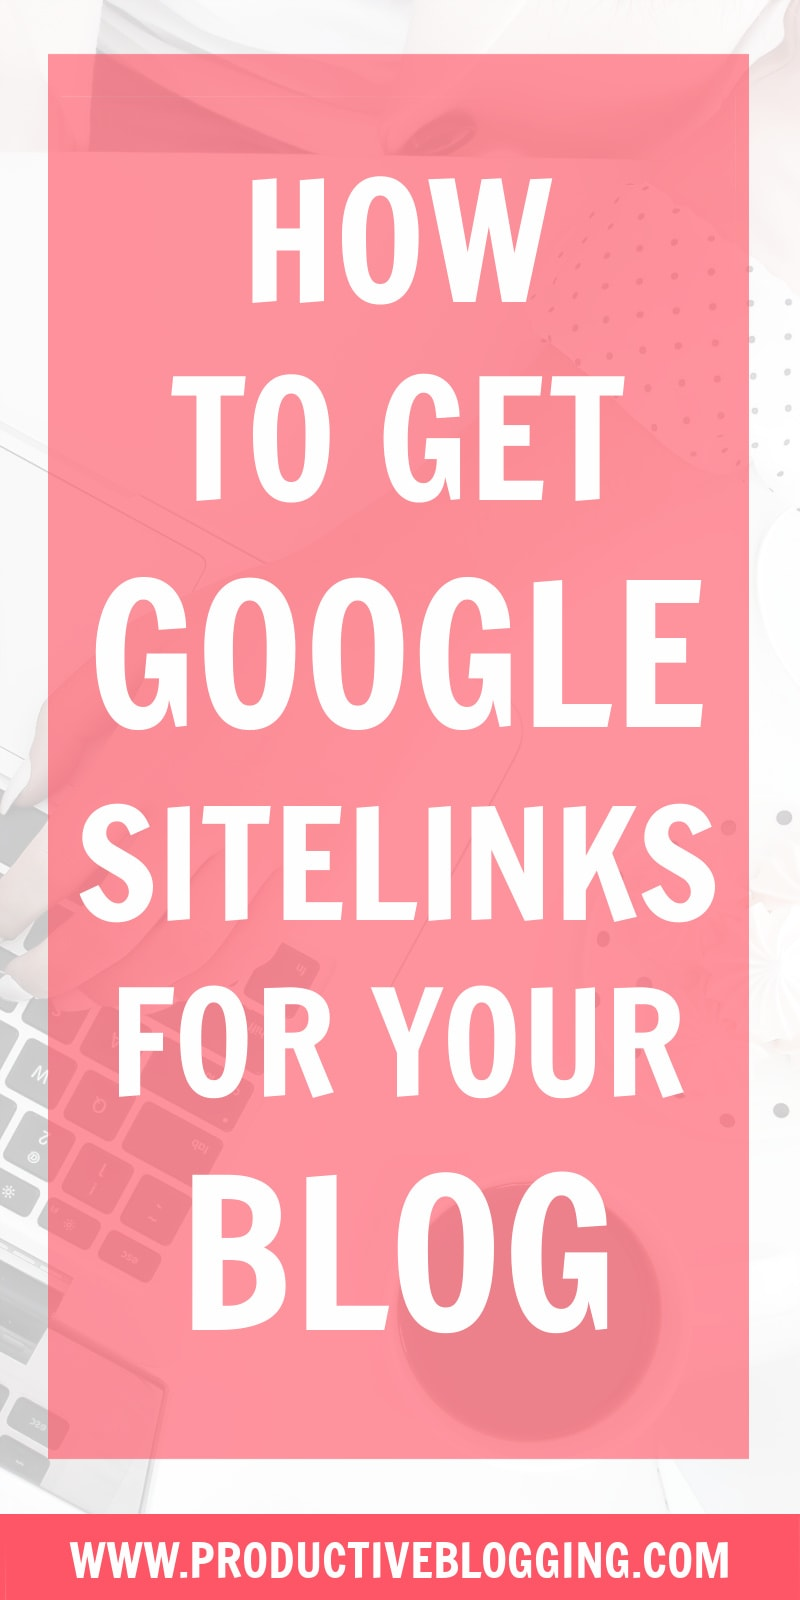 Want to get those extra links that appear under your blog's search result in Google? These are called 'sitelinks' and there are a number of things you can do to get Google to show sitelinks for your blog. Here's how to get Google sitelinks for your blog… #sitelinks #googlesitelinks #SEOforbloggers #SEOforbeginners #beginnersSEO #SEO #SEOtips #SEOhacks #searchengineoptimization #keywords #growyourblog #bloggrowth #bloggrowthhacks #bloggingtips #blogginghacks #blogtips #productiveblogging